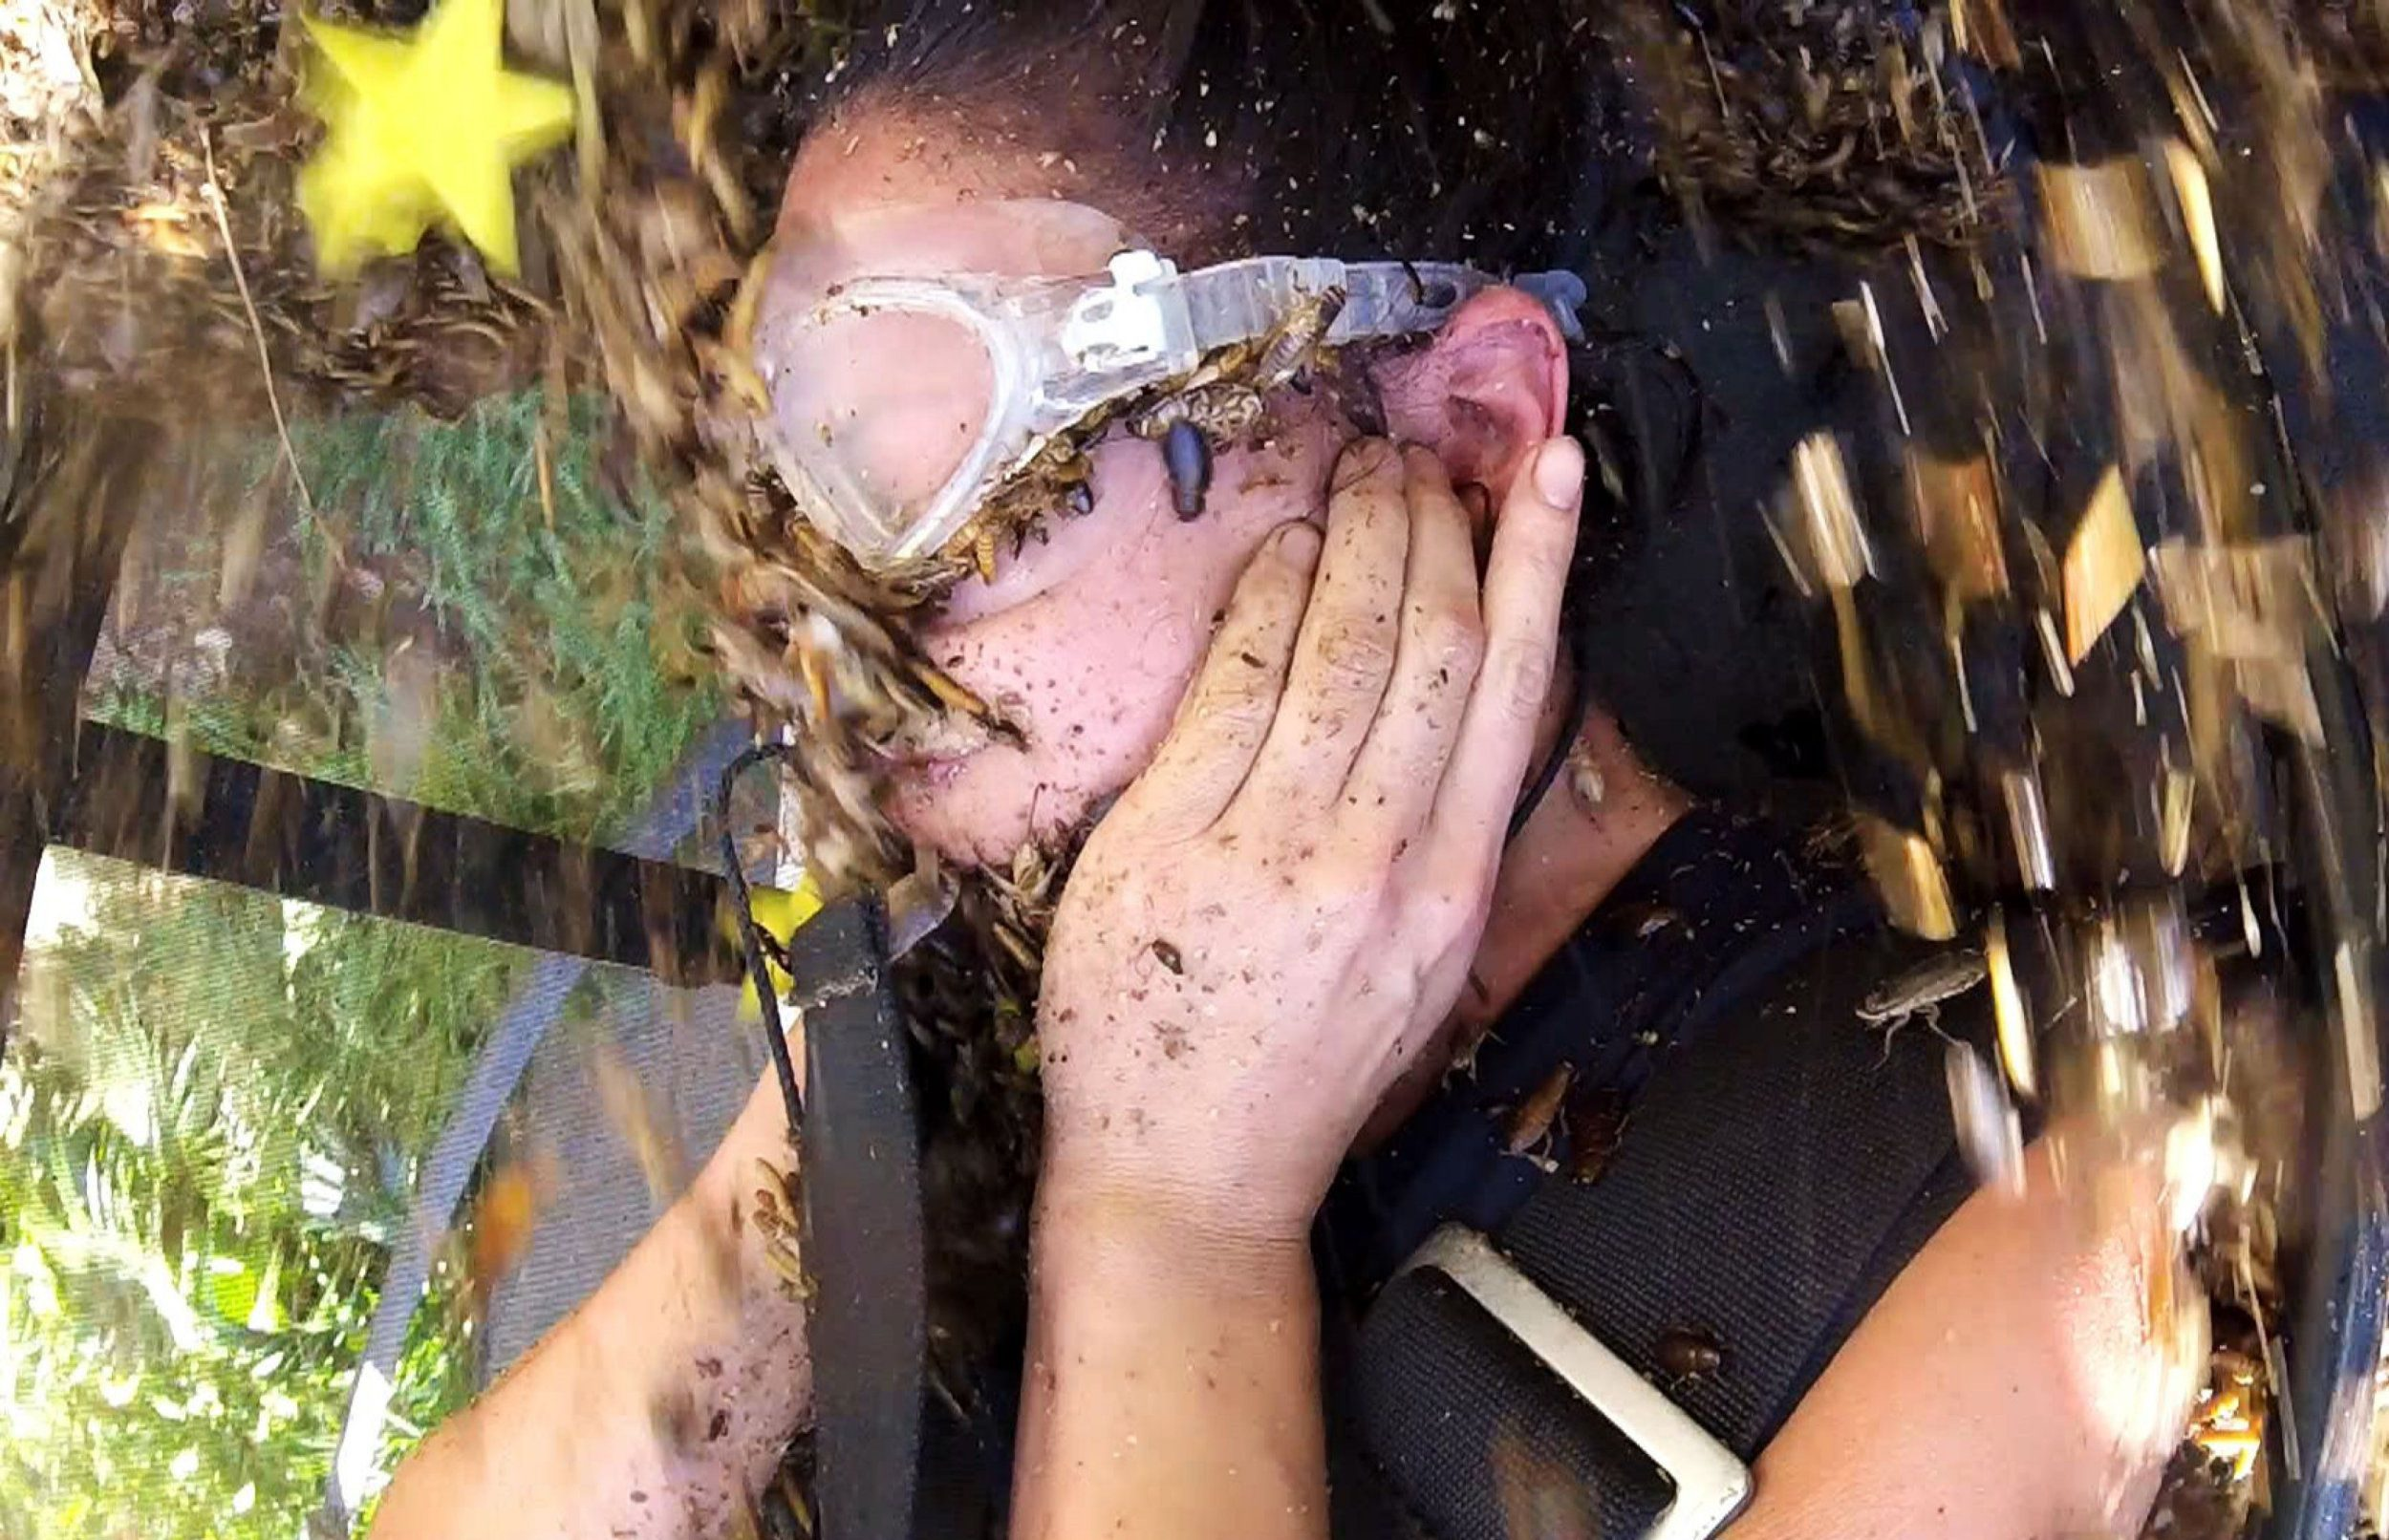 ***EMBARGO, NOT TO BE USED BEFORE 22:00 GMT, 30 Nov 2016 - EDITORIAL USE ONLY - NO MERCHANDISING*** Mandatory Credit: Photo by ITV/REX/Shutterstock (7528546bj) Bushtucker Trial - Wicked Windmill - Sam Quek 'I'm a Celebrity...Get Me Out of Here!' TV Show, Australia - 30 Nov 2016